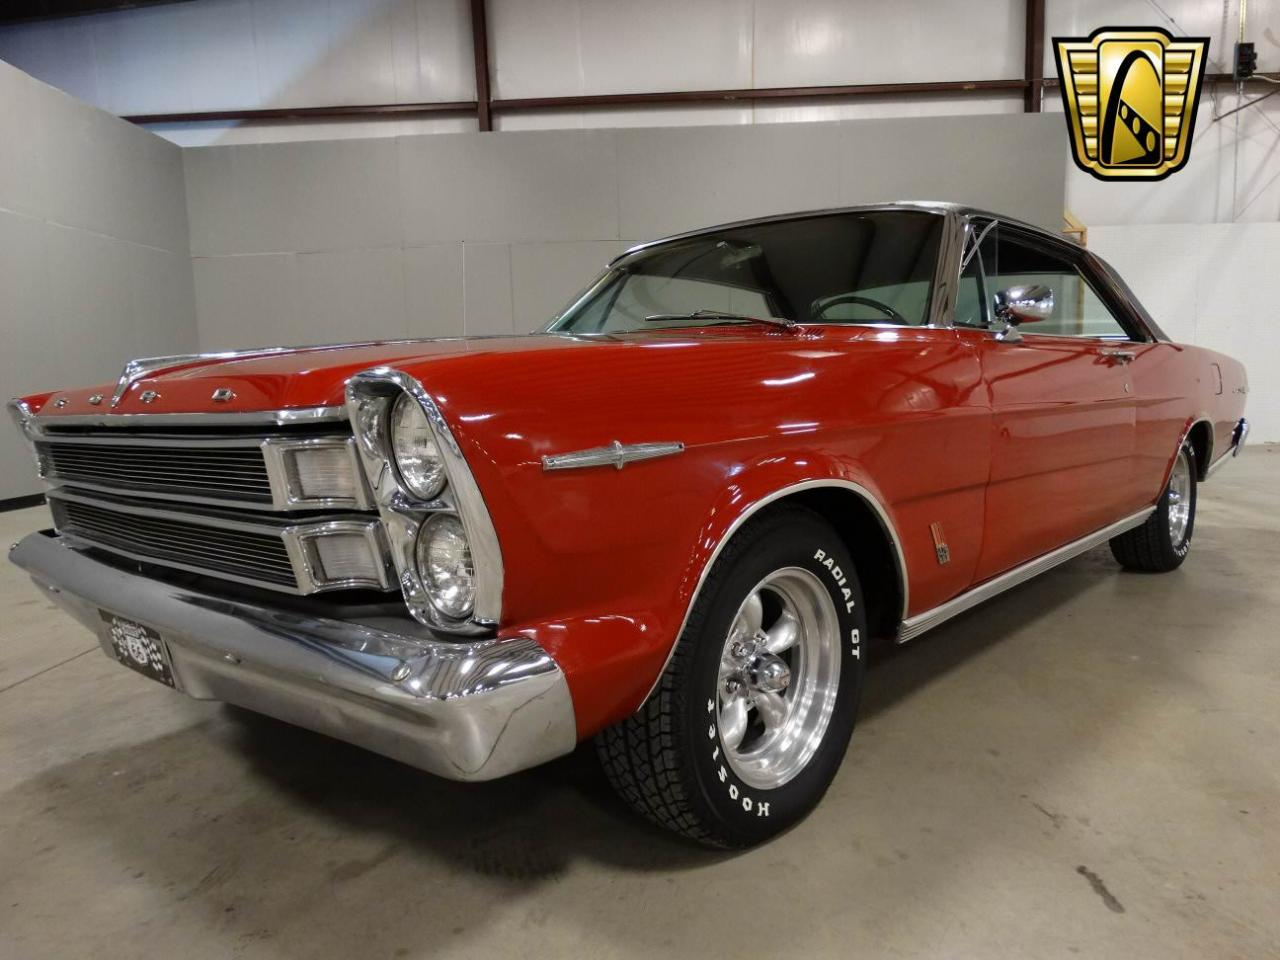 1966 ford galaxie 500xl gateway classic cars 677. Cars Review. Best American Auto & Cars Review